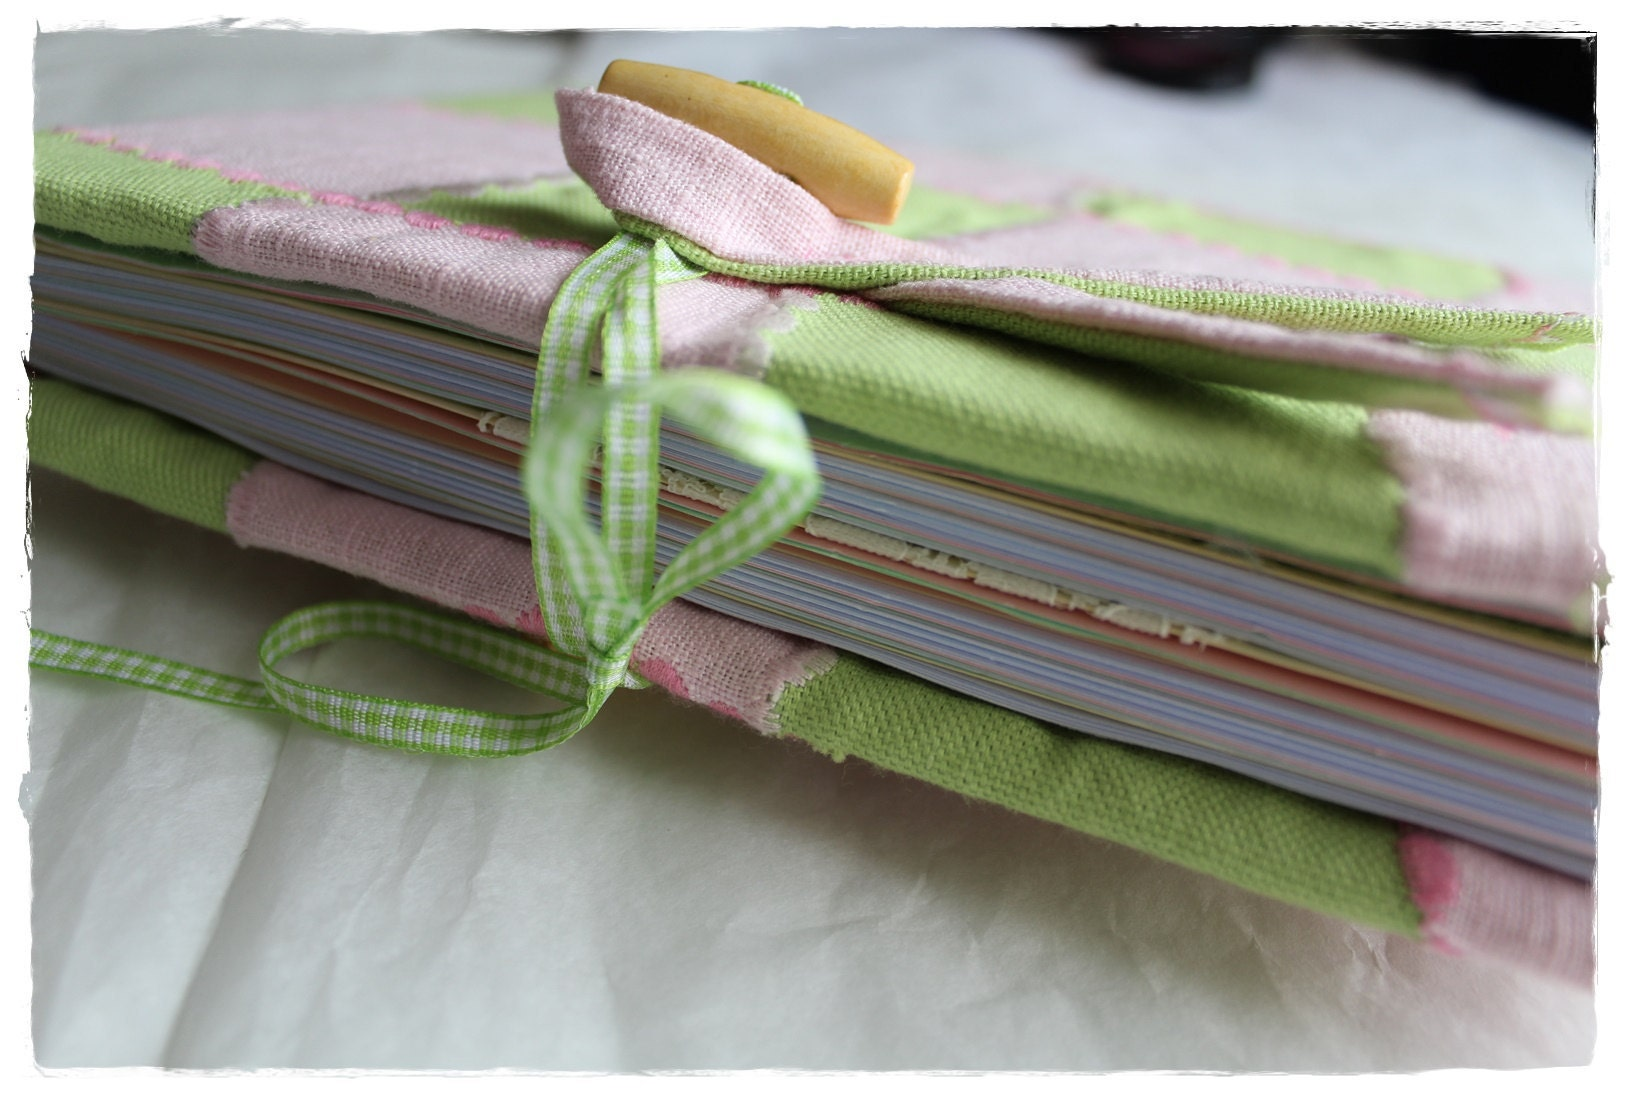 memory book, baby shower, bullet journal, carnets créatifs, notebook for bujo, diary